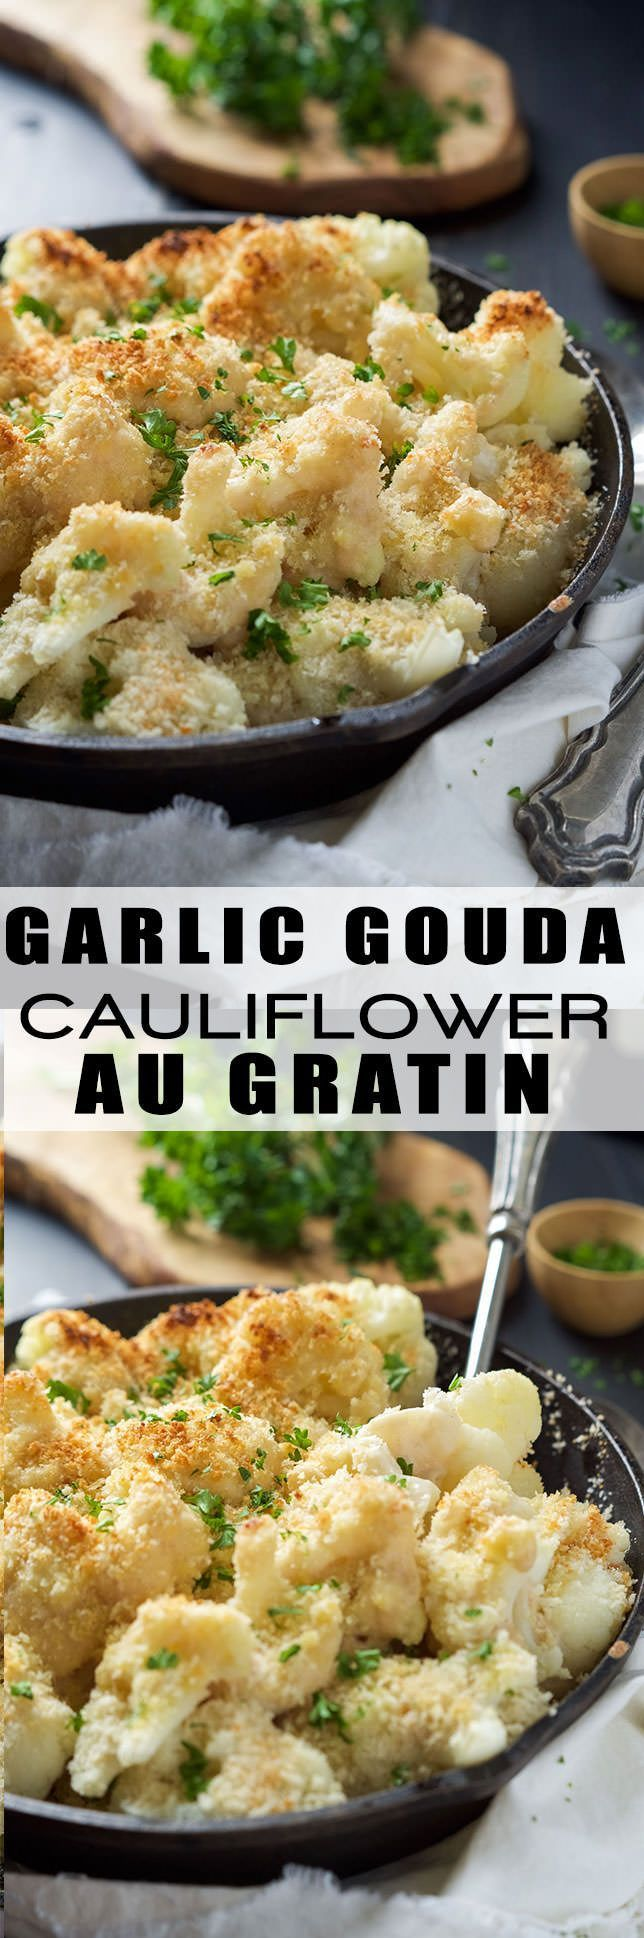 Garlic Gouda & Parmesan Cauliflower Au Gratin is the perfect side dish for your holiday table but easy enough for any weeknight dinner! Tender cauliflower blanketed in a double cheese sauce and crunchy panko topping! #Skinny4LifeEats™